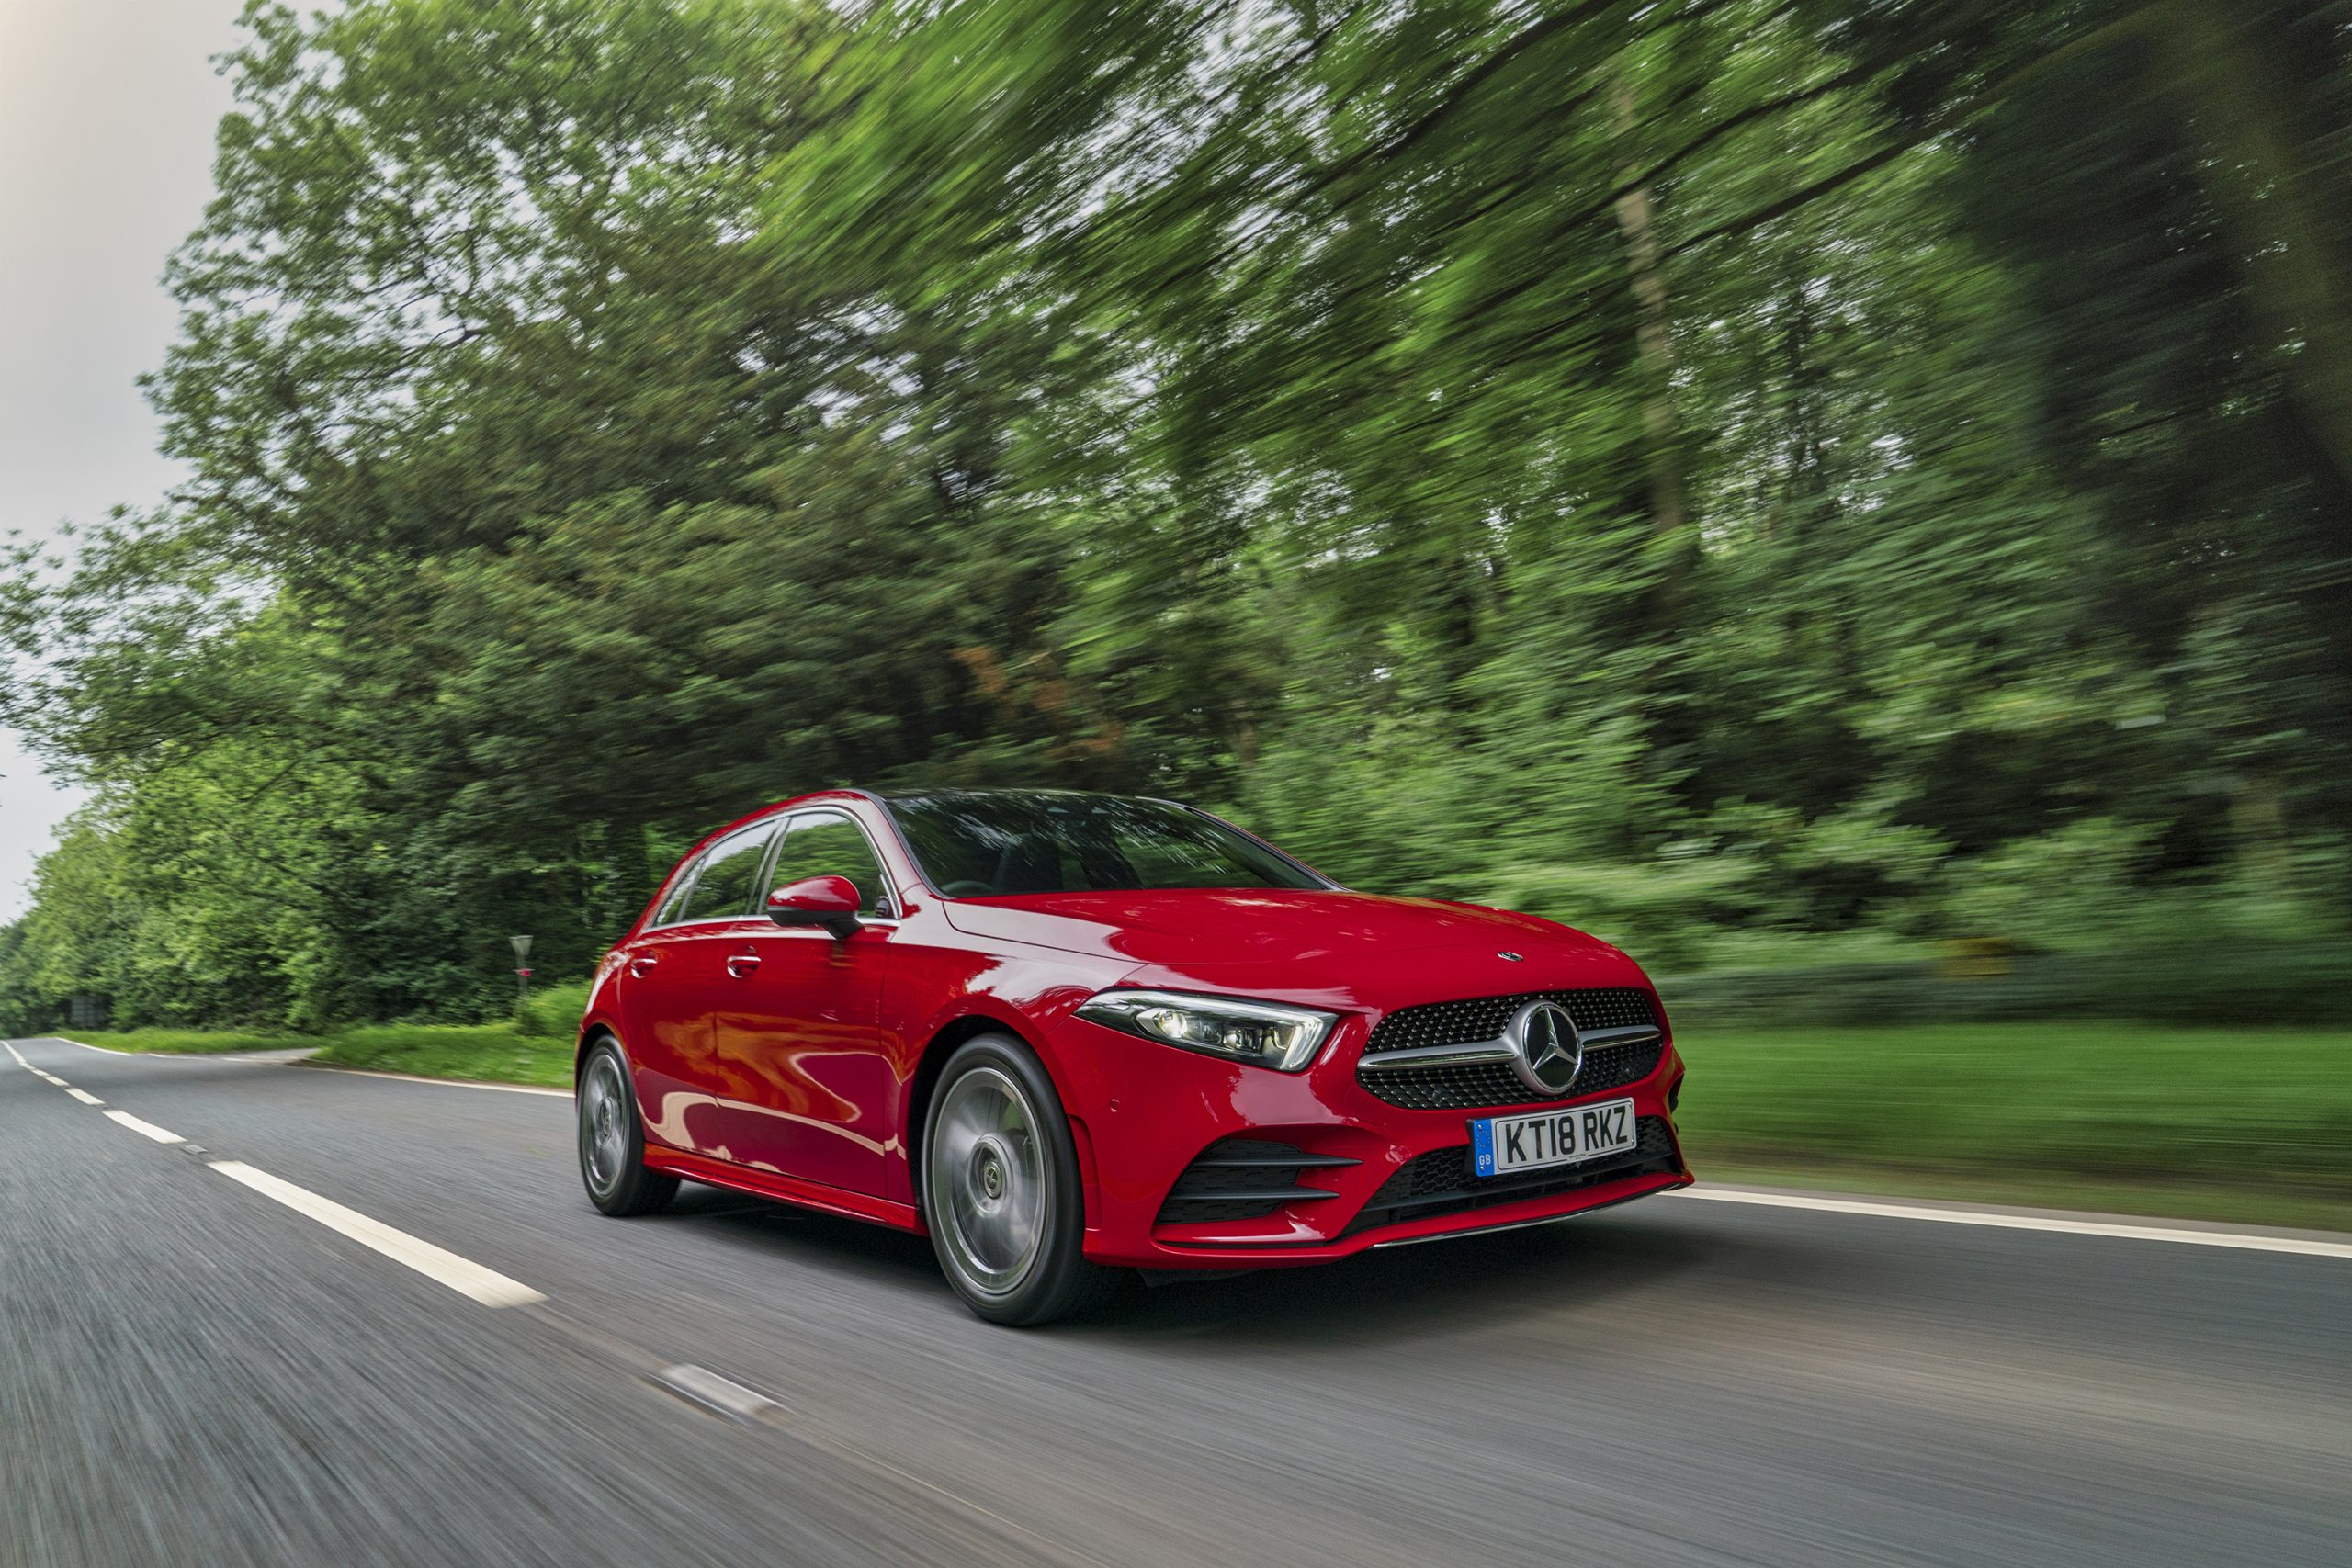 Best-selling cars in the UK - Merc A-Class